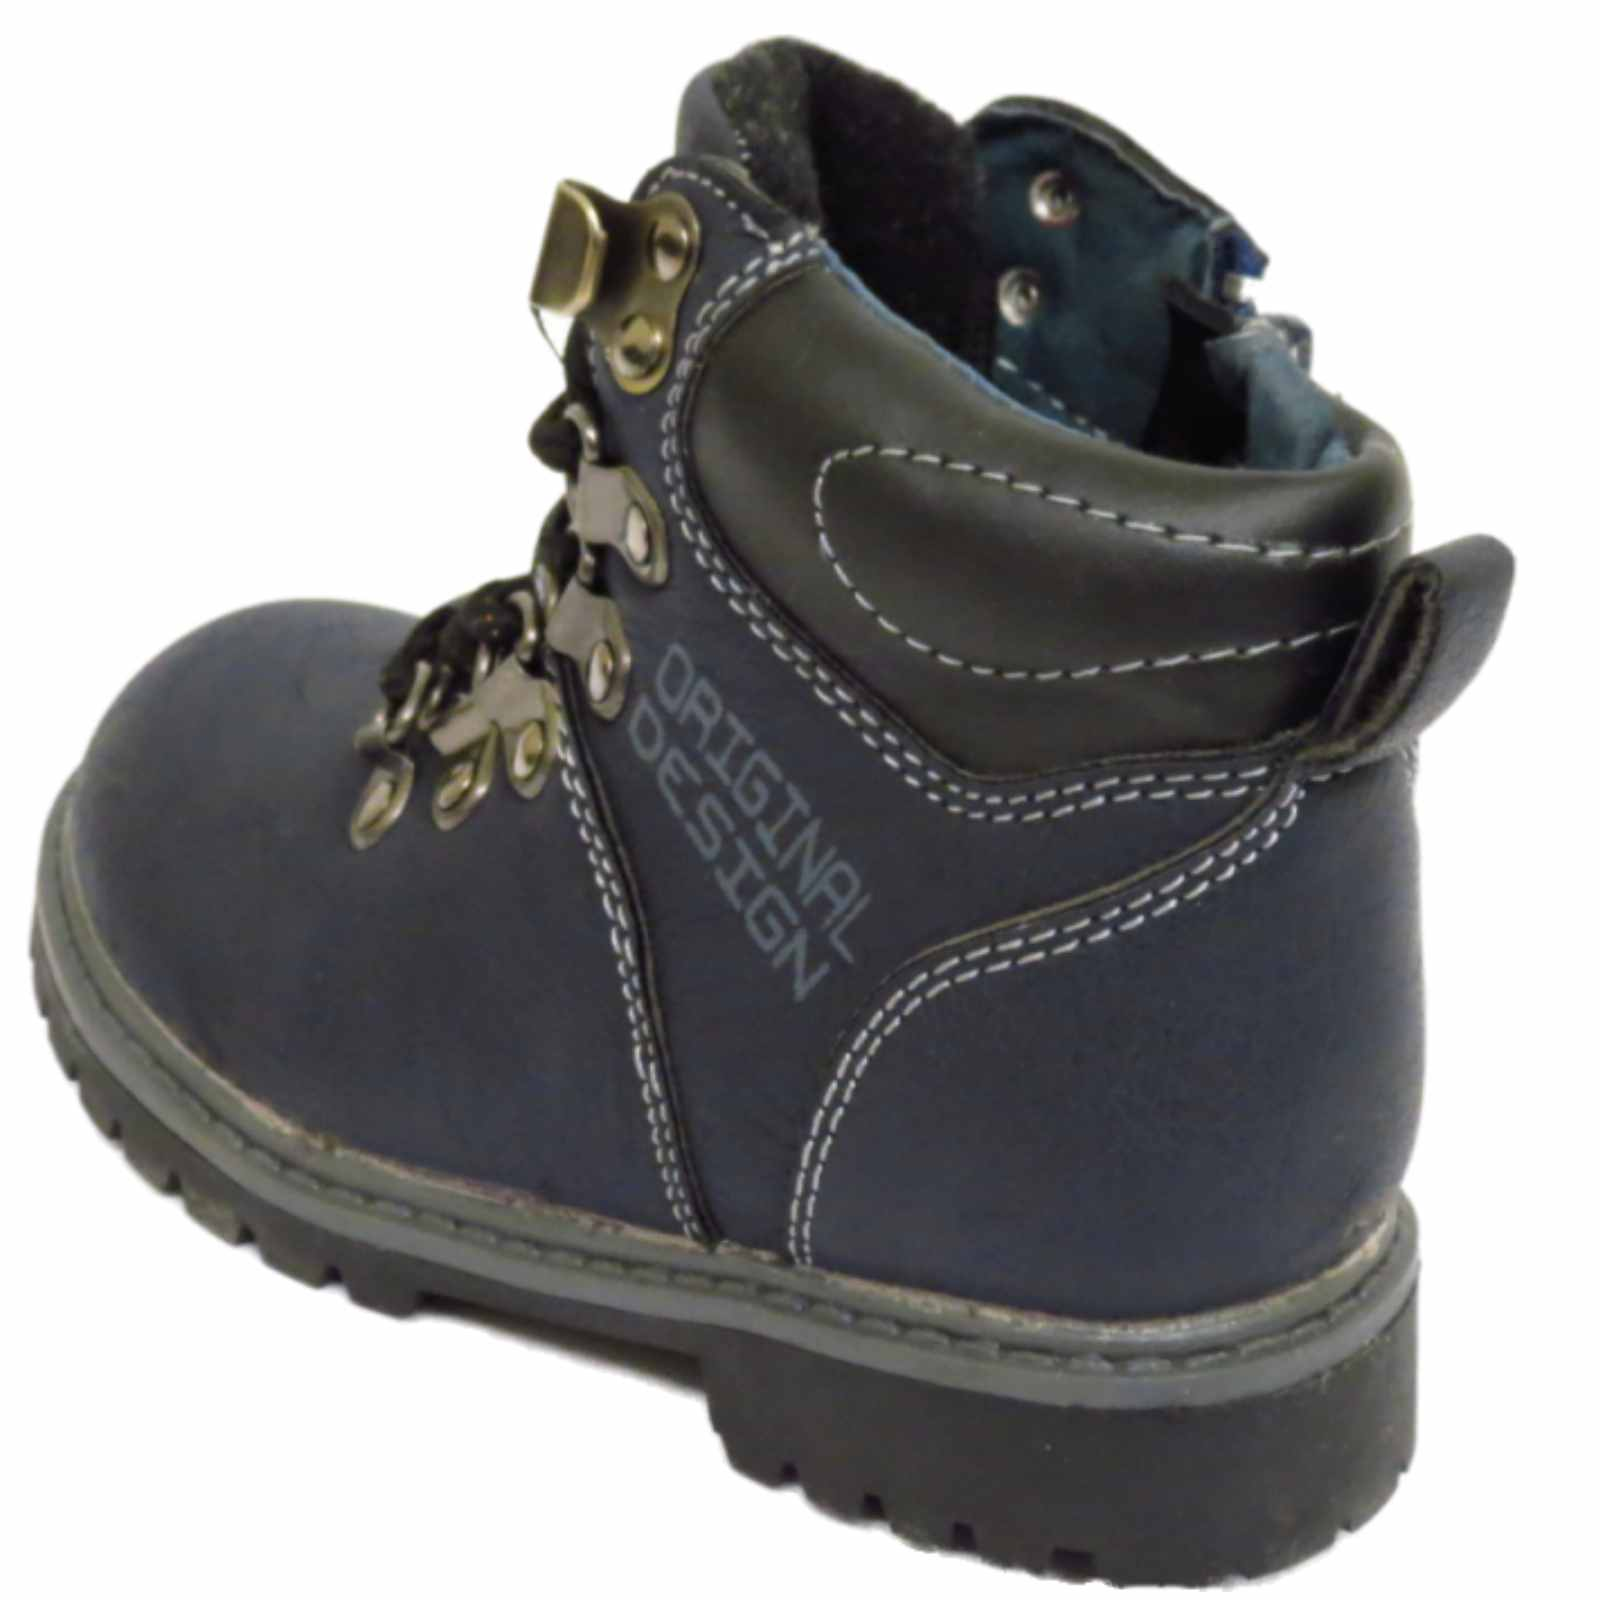 Size 8 Boys Boots with FREE Shipping & Exchanges, and a % price guarantee. Choose from a huge selection of Size 8 Boys Boots styles.